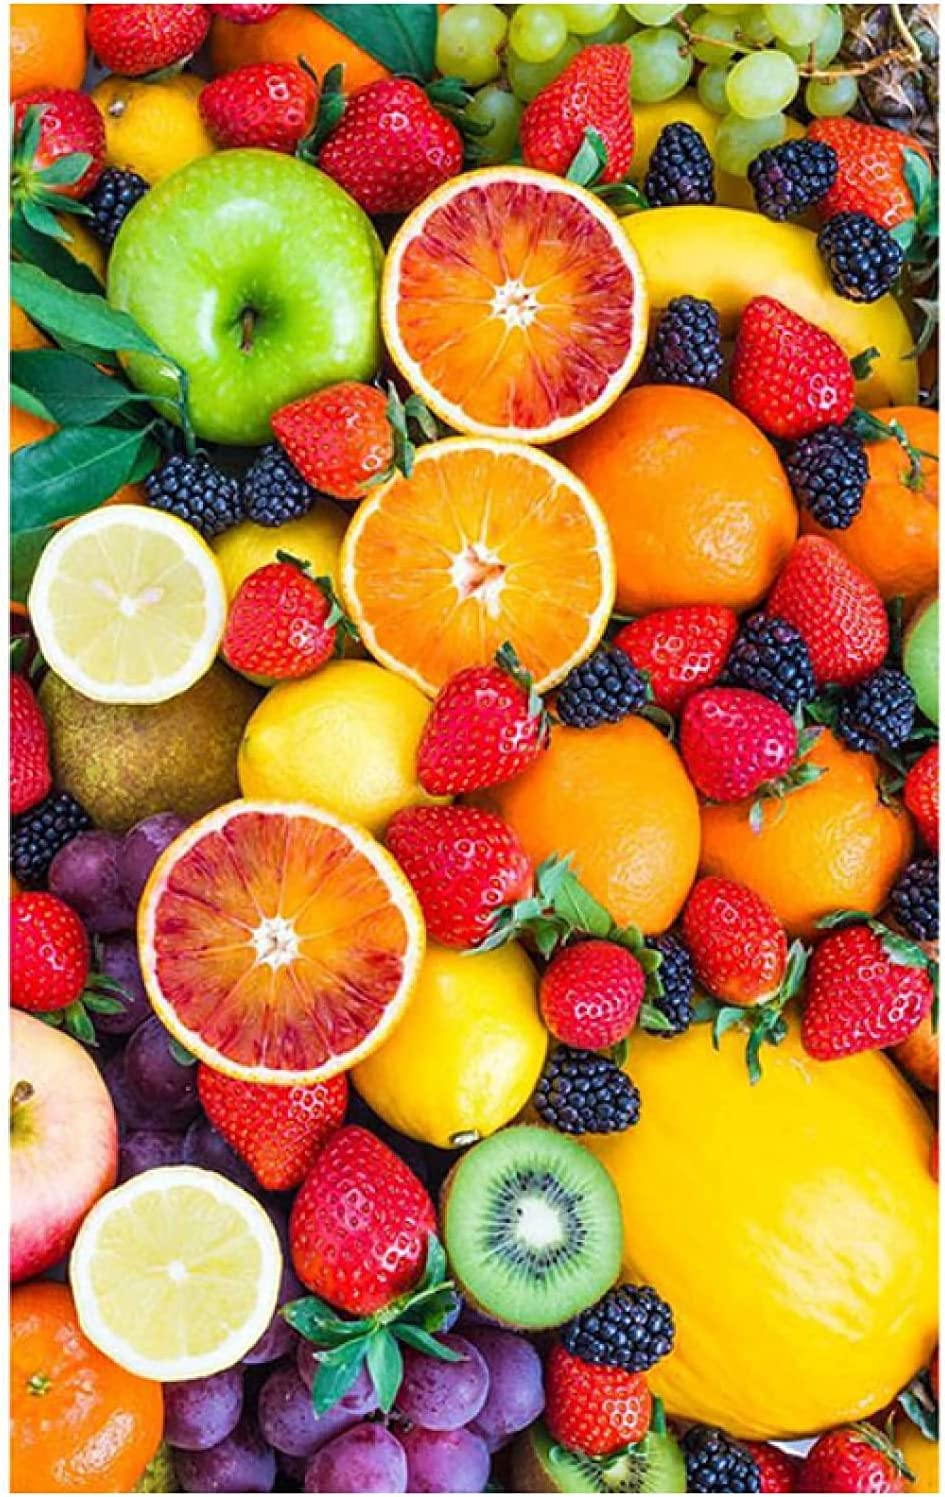 New product type Vegetable Fruits Healthy Food Poster Decor Wall Art Paintings fo Popular standard